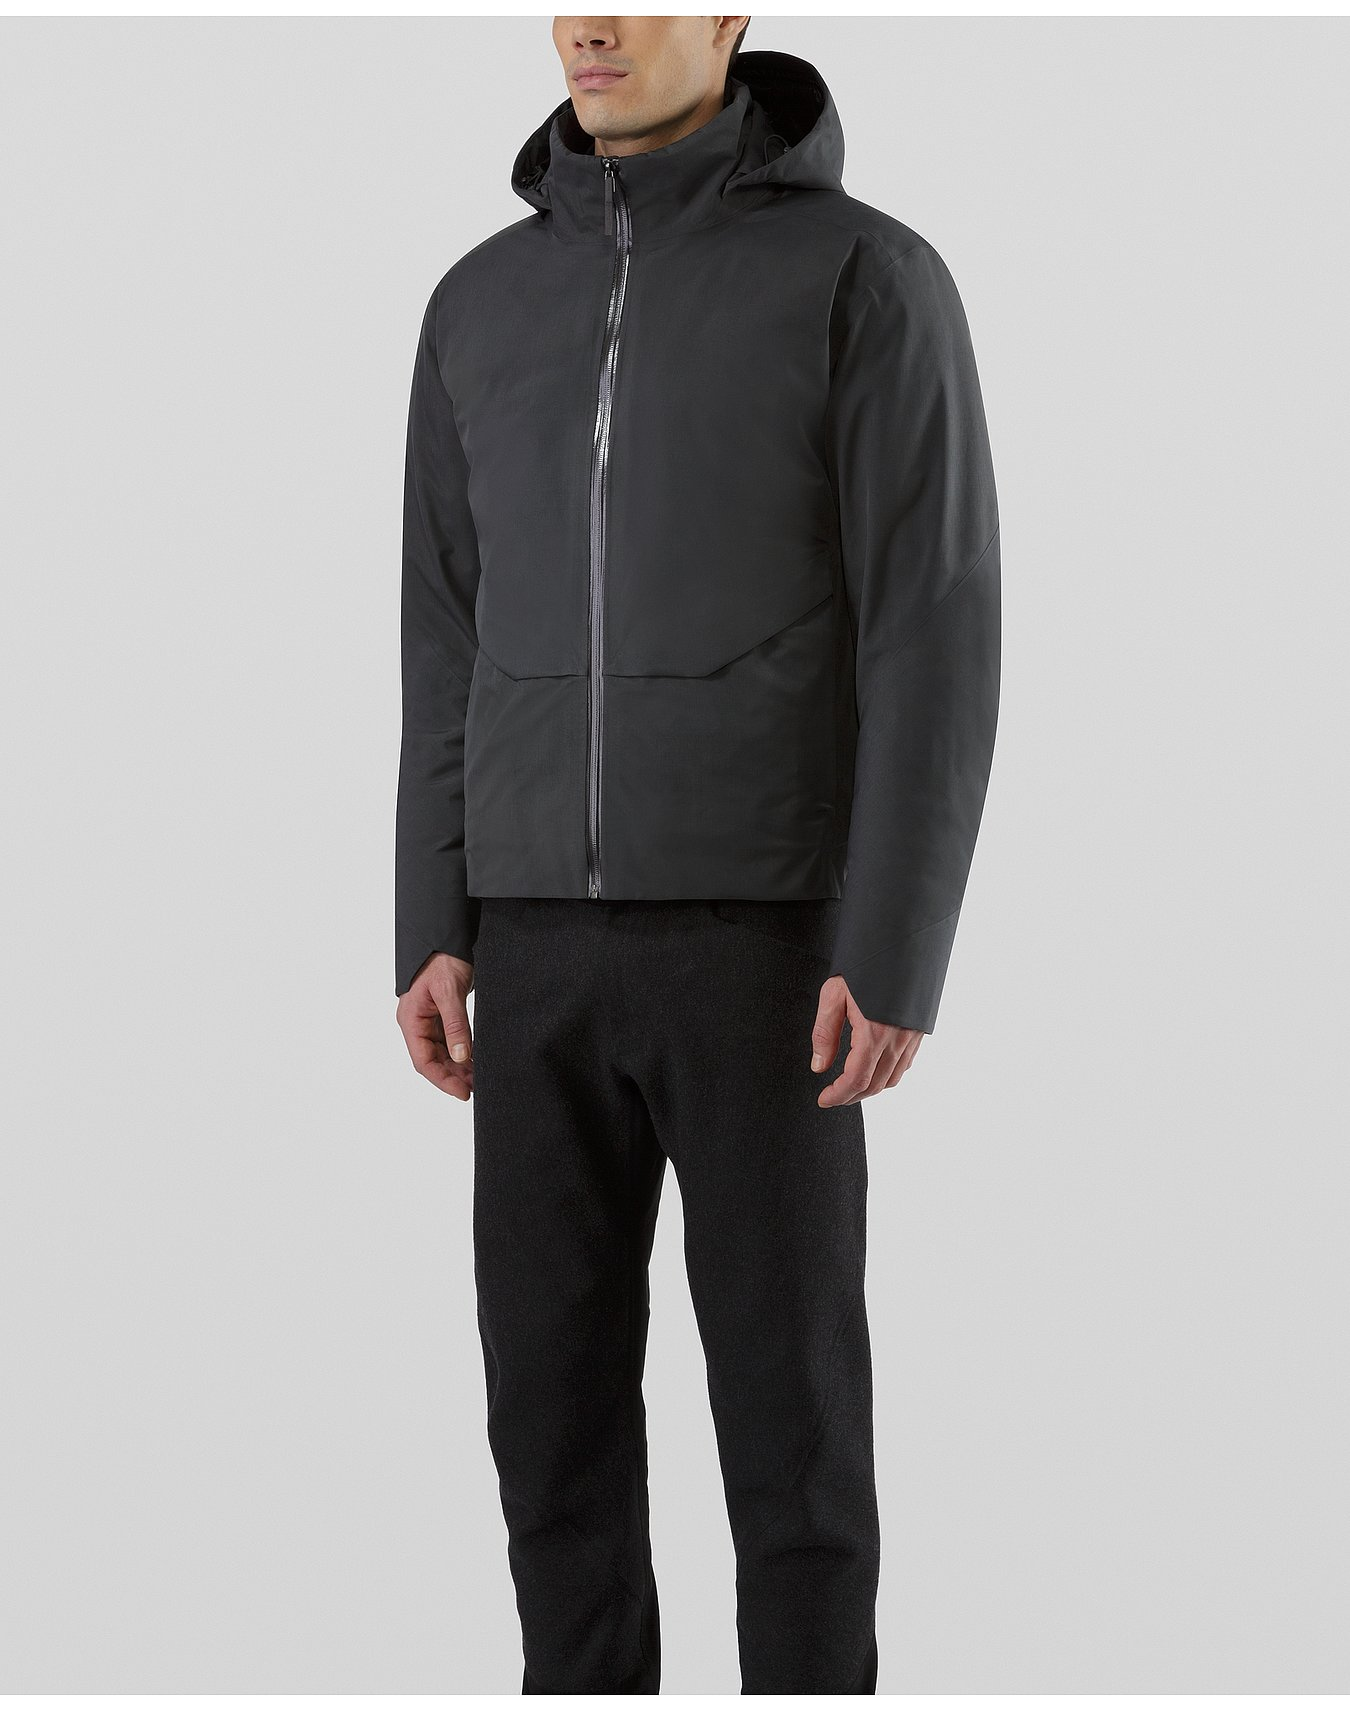 veilance node jacket